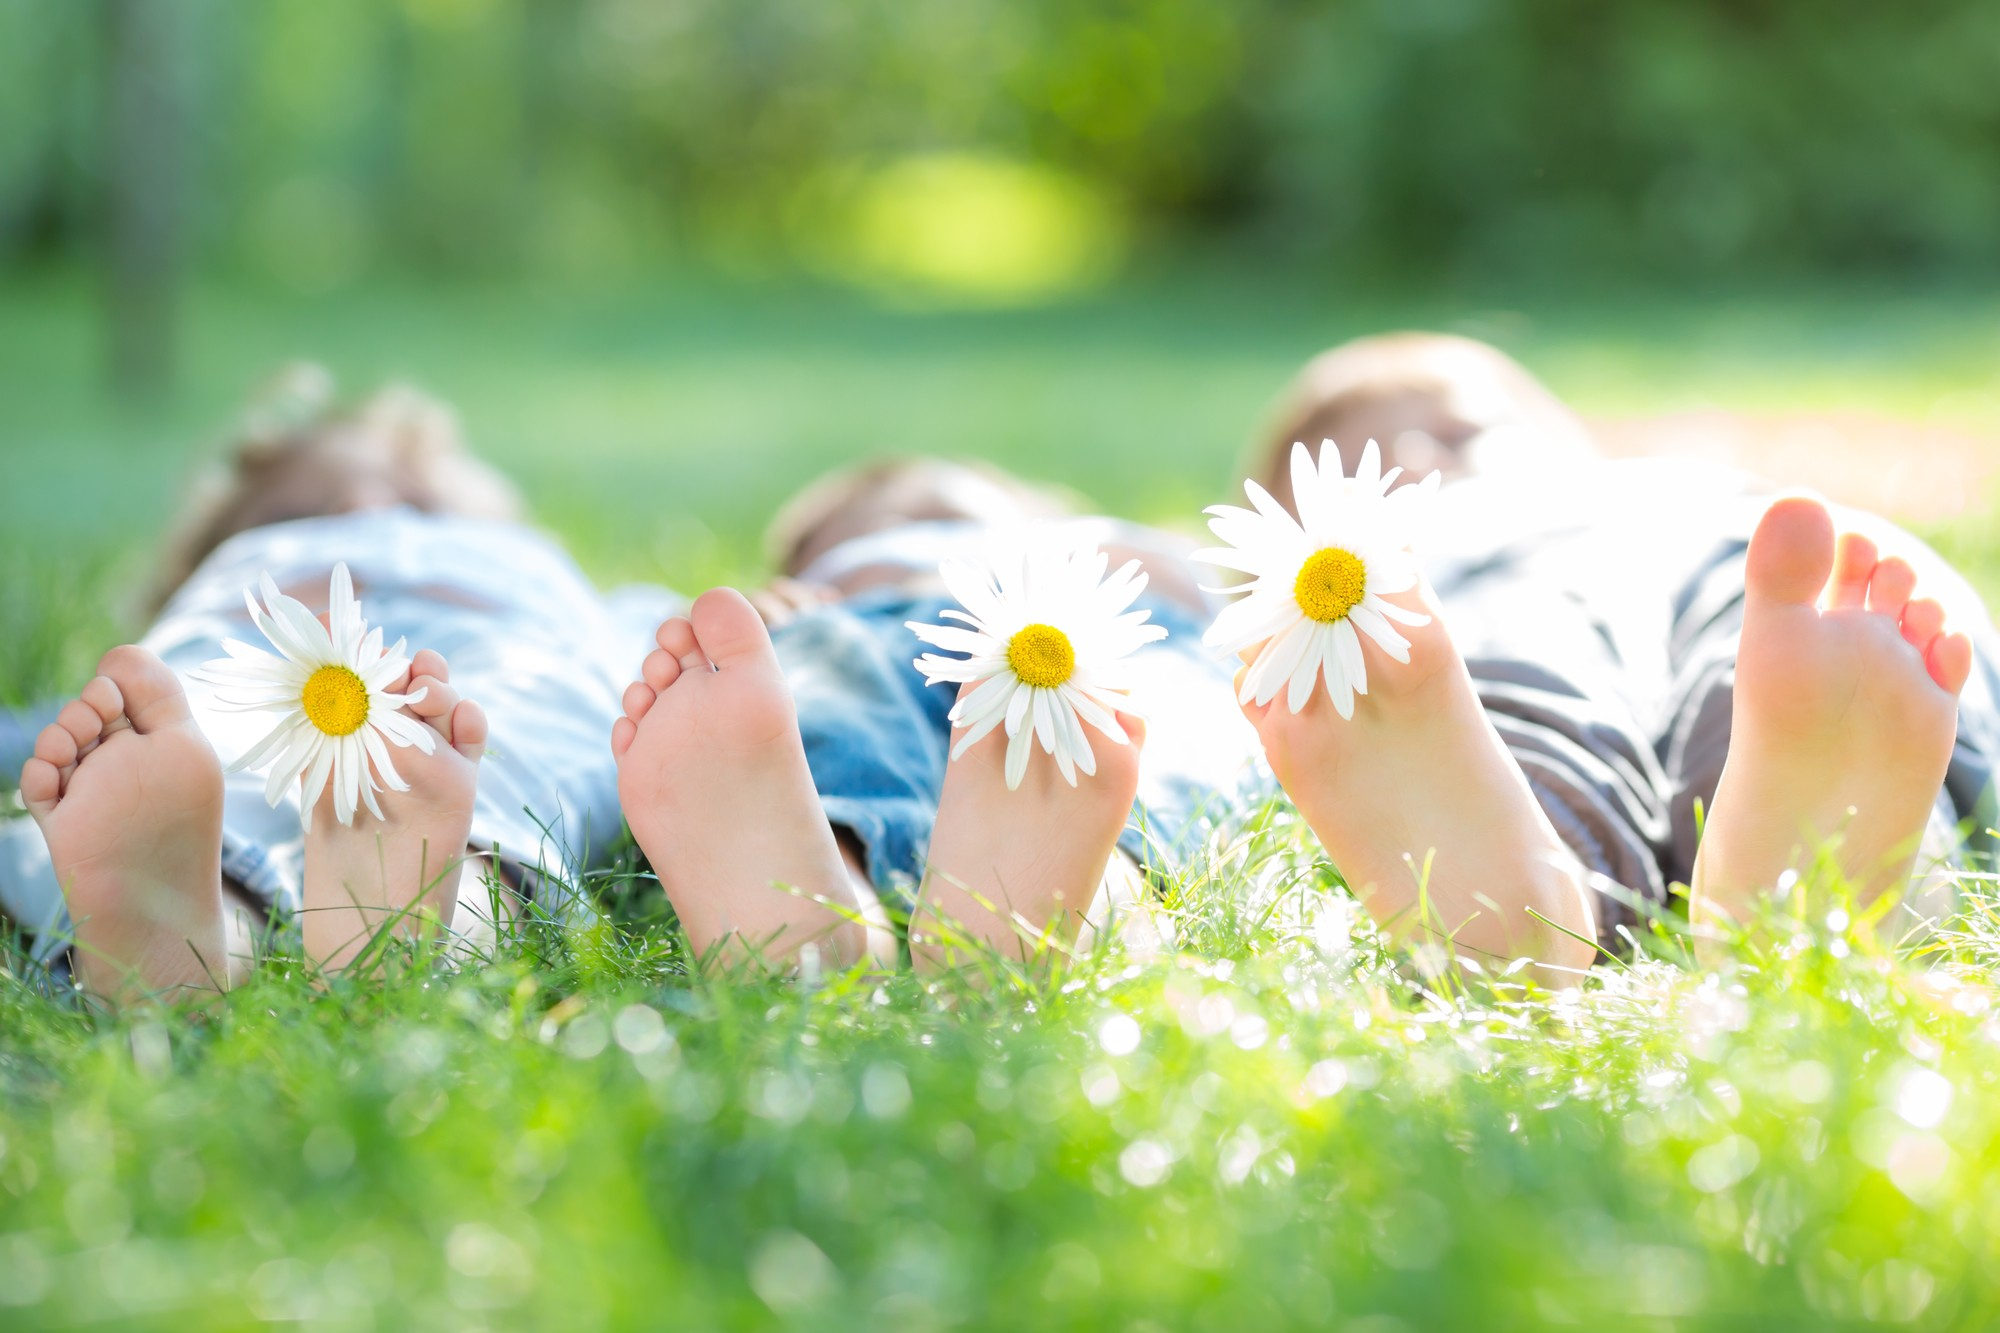 Group of happy children with flowers lying outdoors in spring park